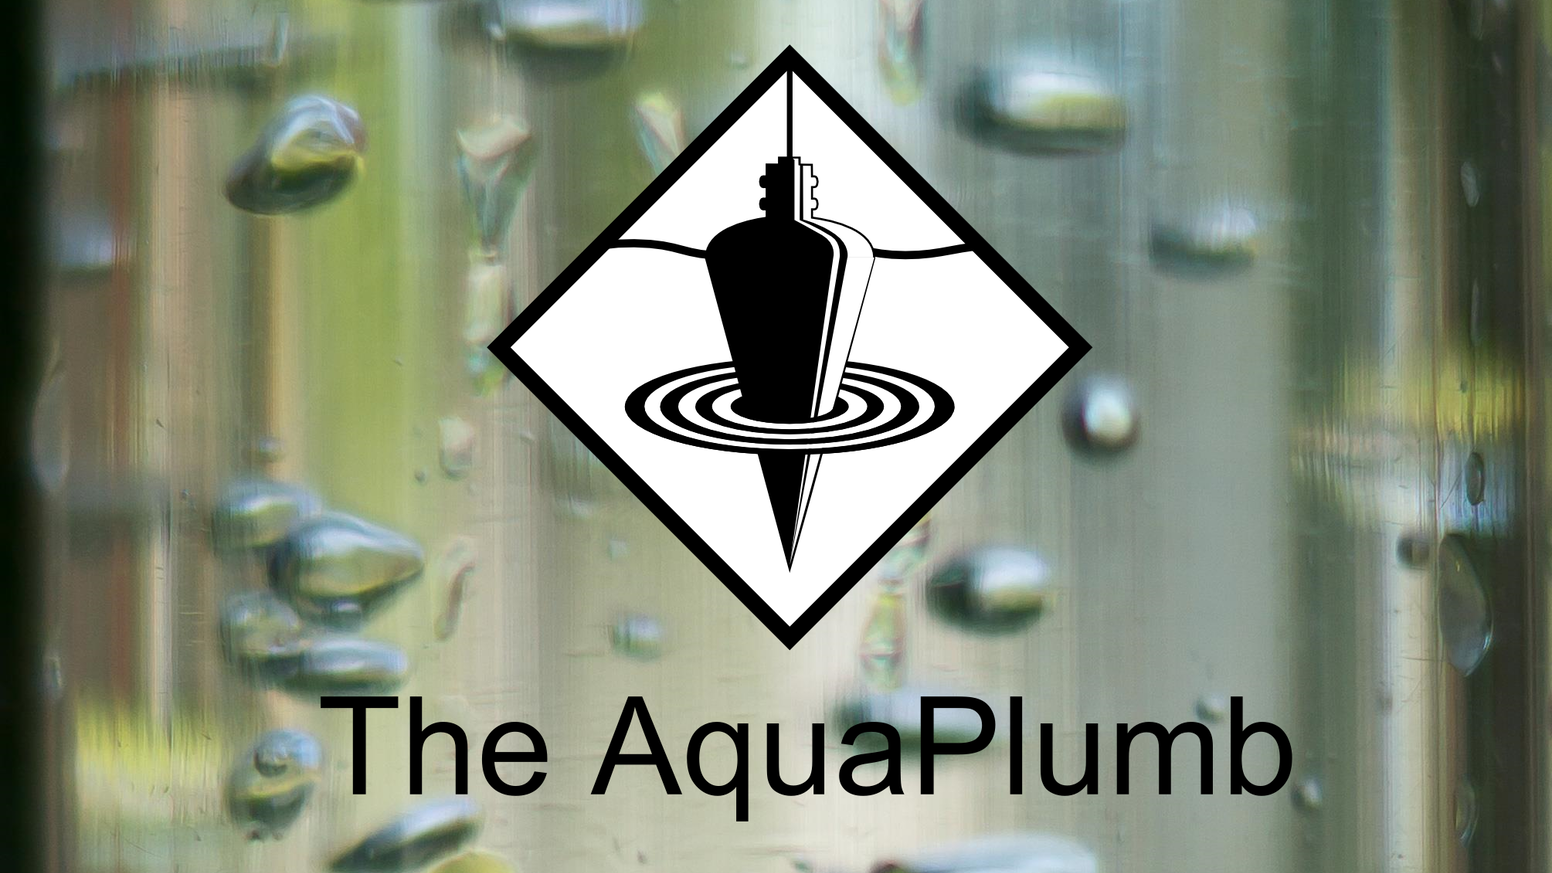 AquaPlumb - Water Level Sensor by Vegetronix, Inc  — Kickstarter